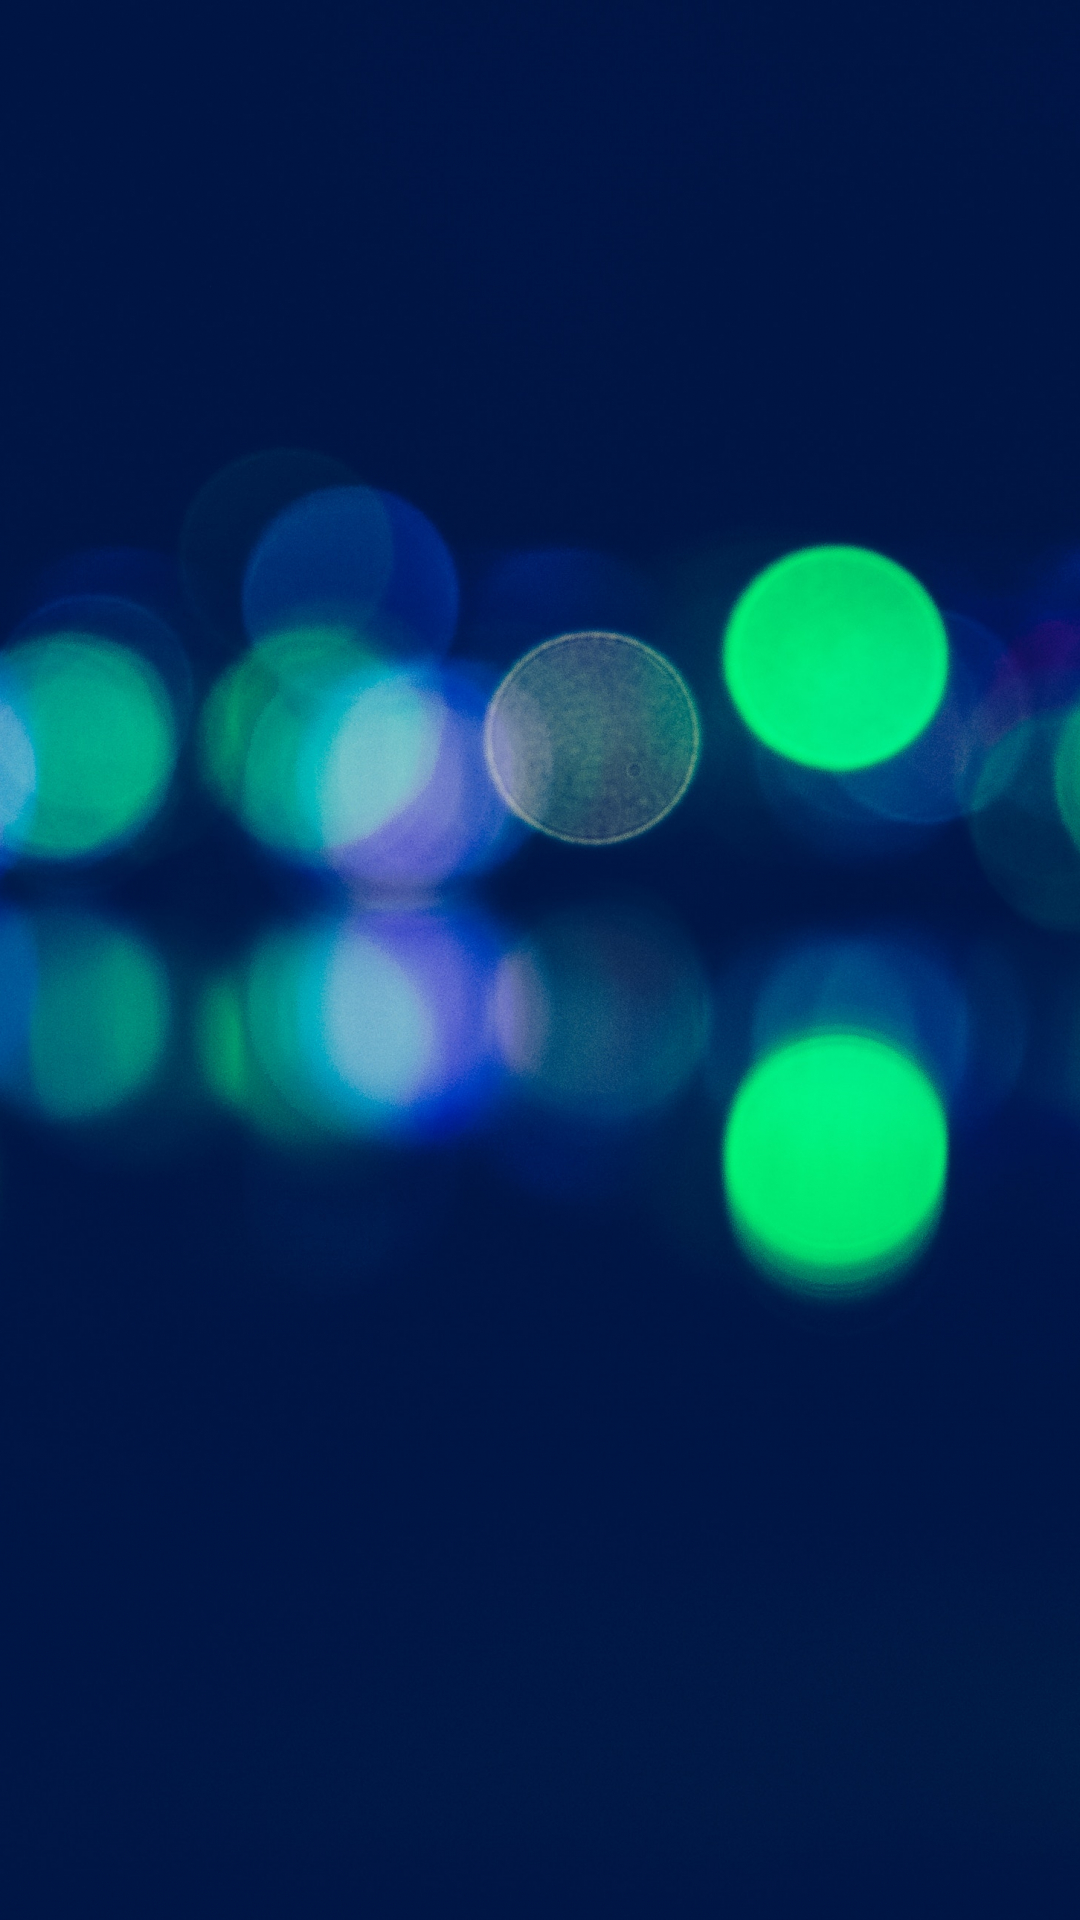 Bokeh And Blur iPhone Wallpaper